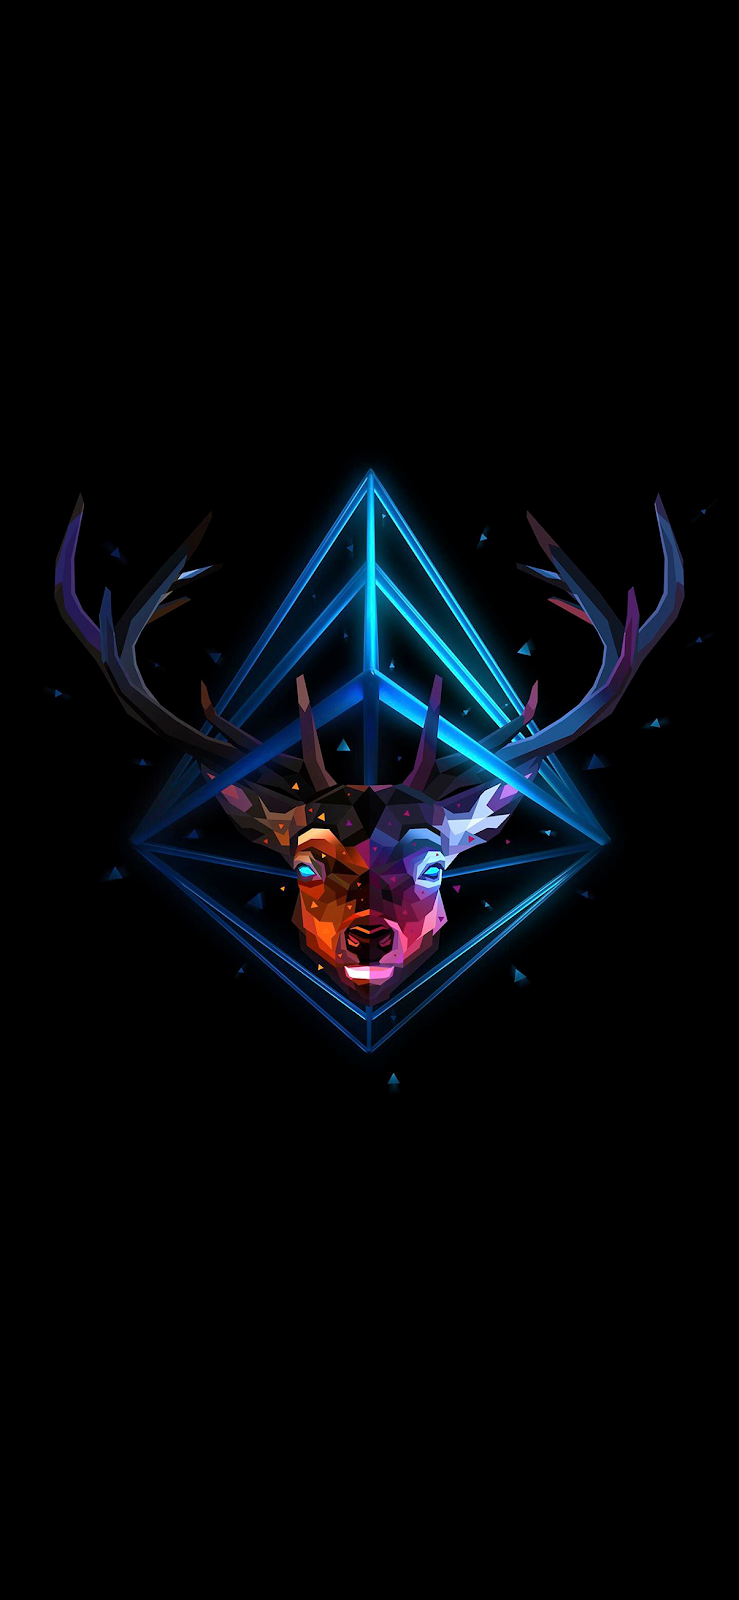 Polygonal Stag Head (Saving battery for Amoled display)